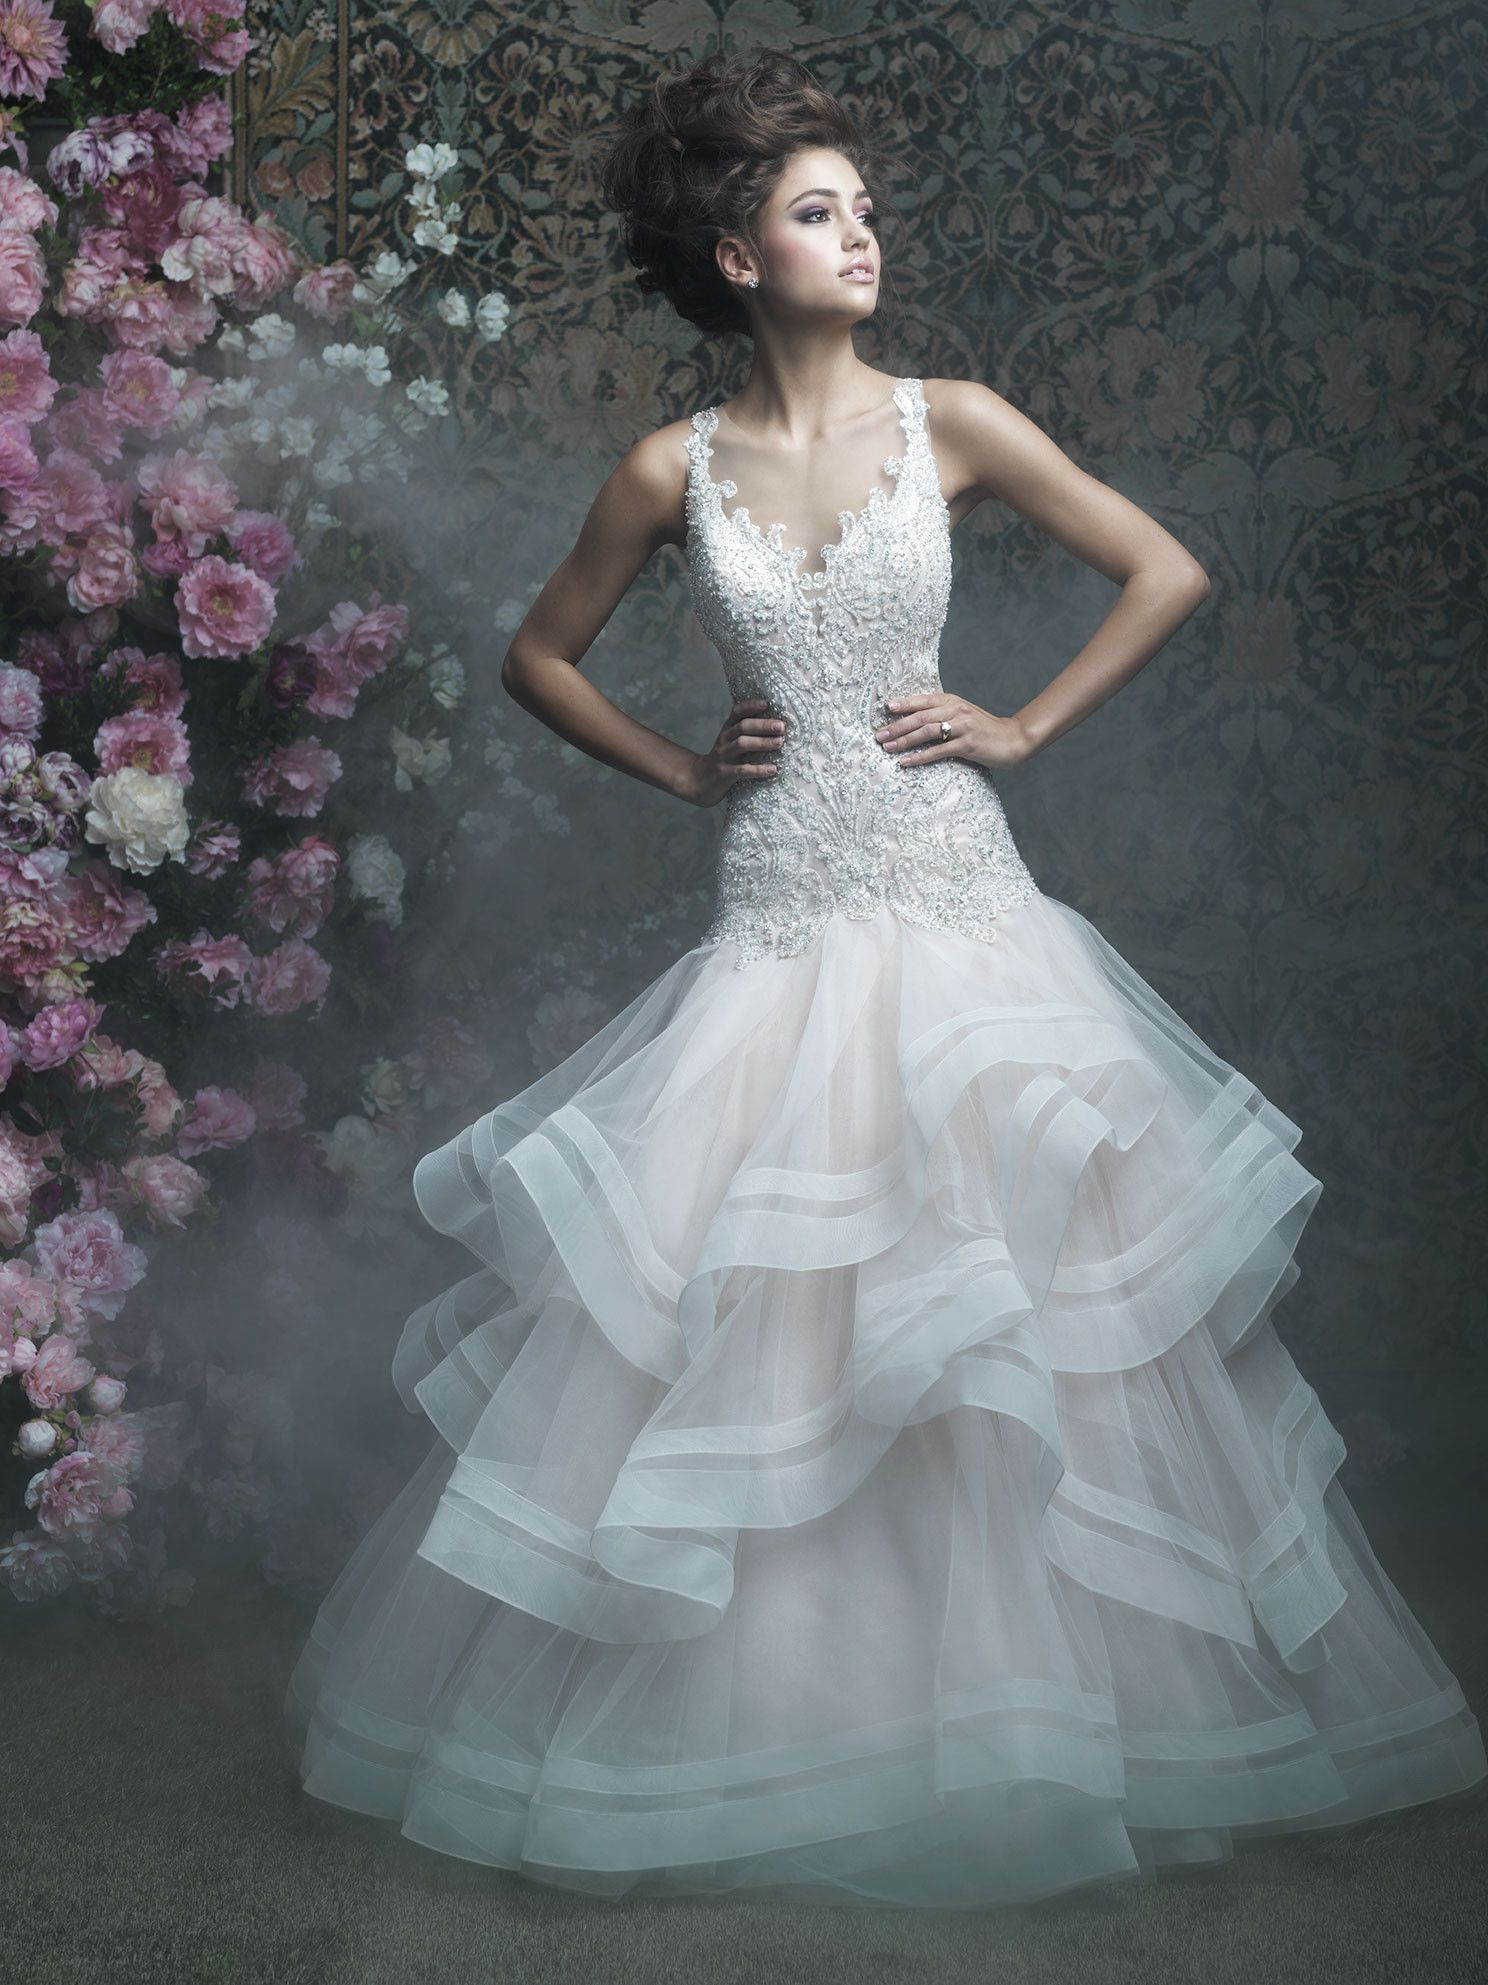 Allure C405 | Allure couture, Wedding dress and Weddings